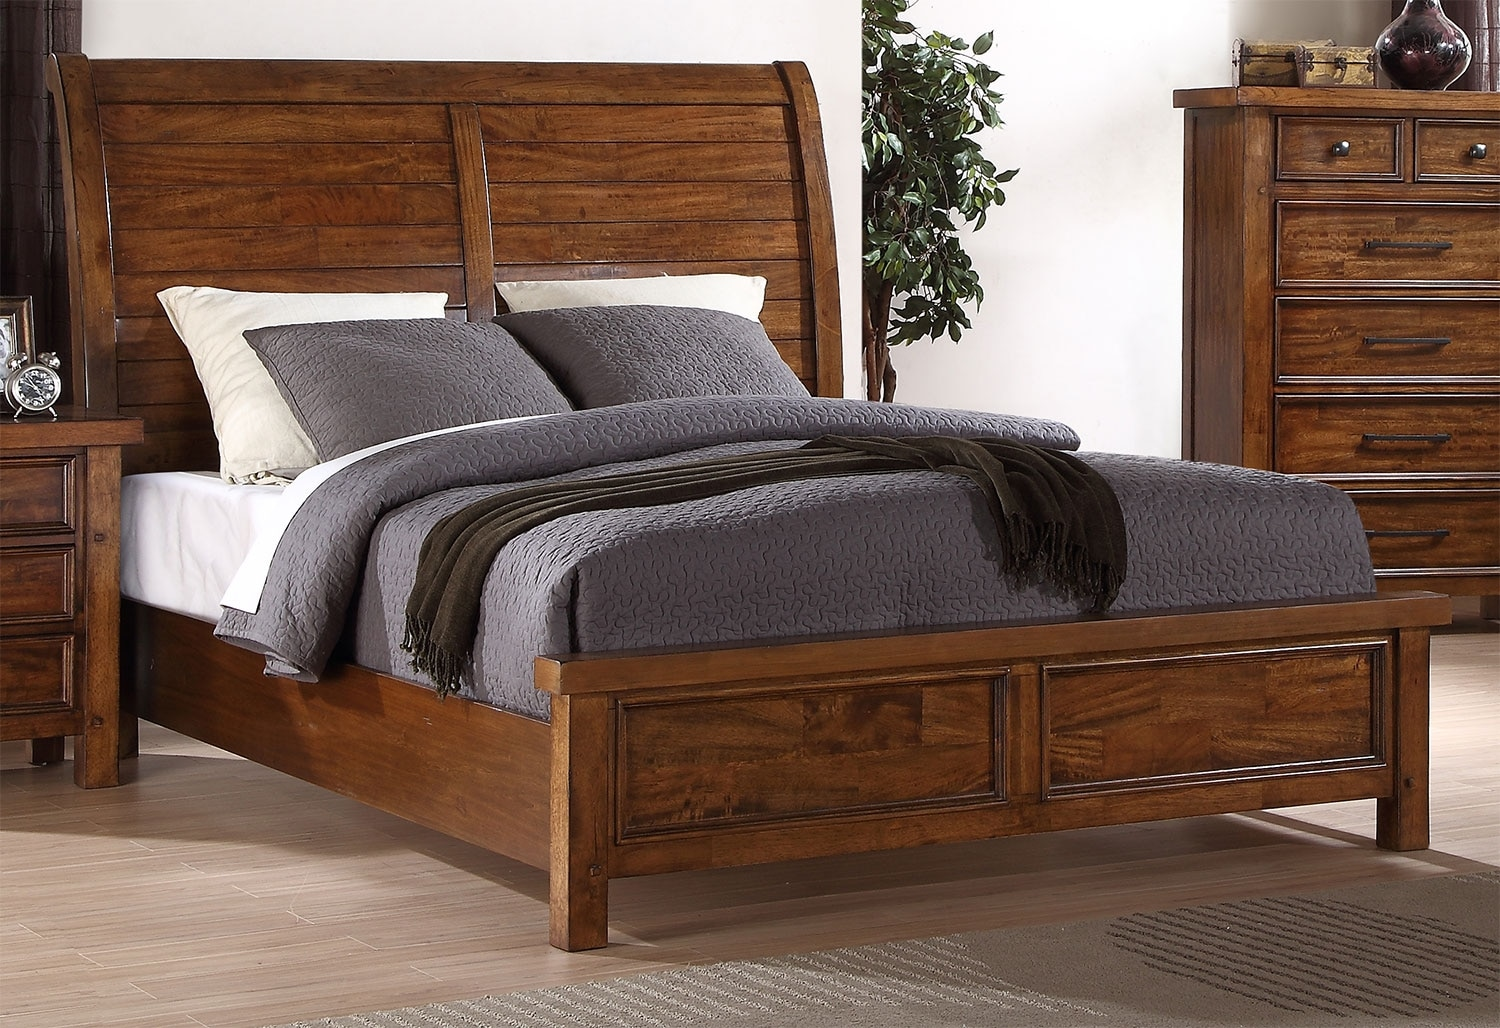 Bedroom Furniture - Sonoma Queen Sleigh Bed – Light Brown